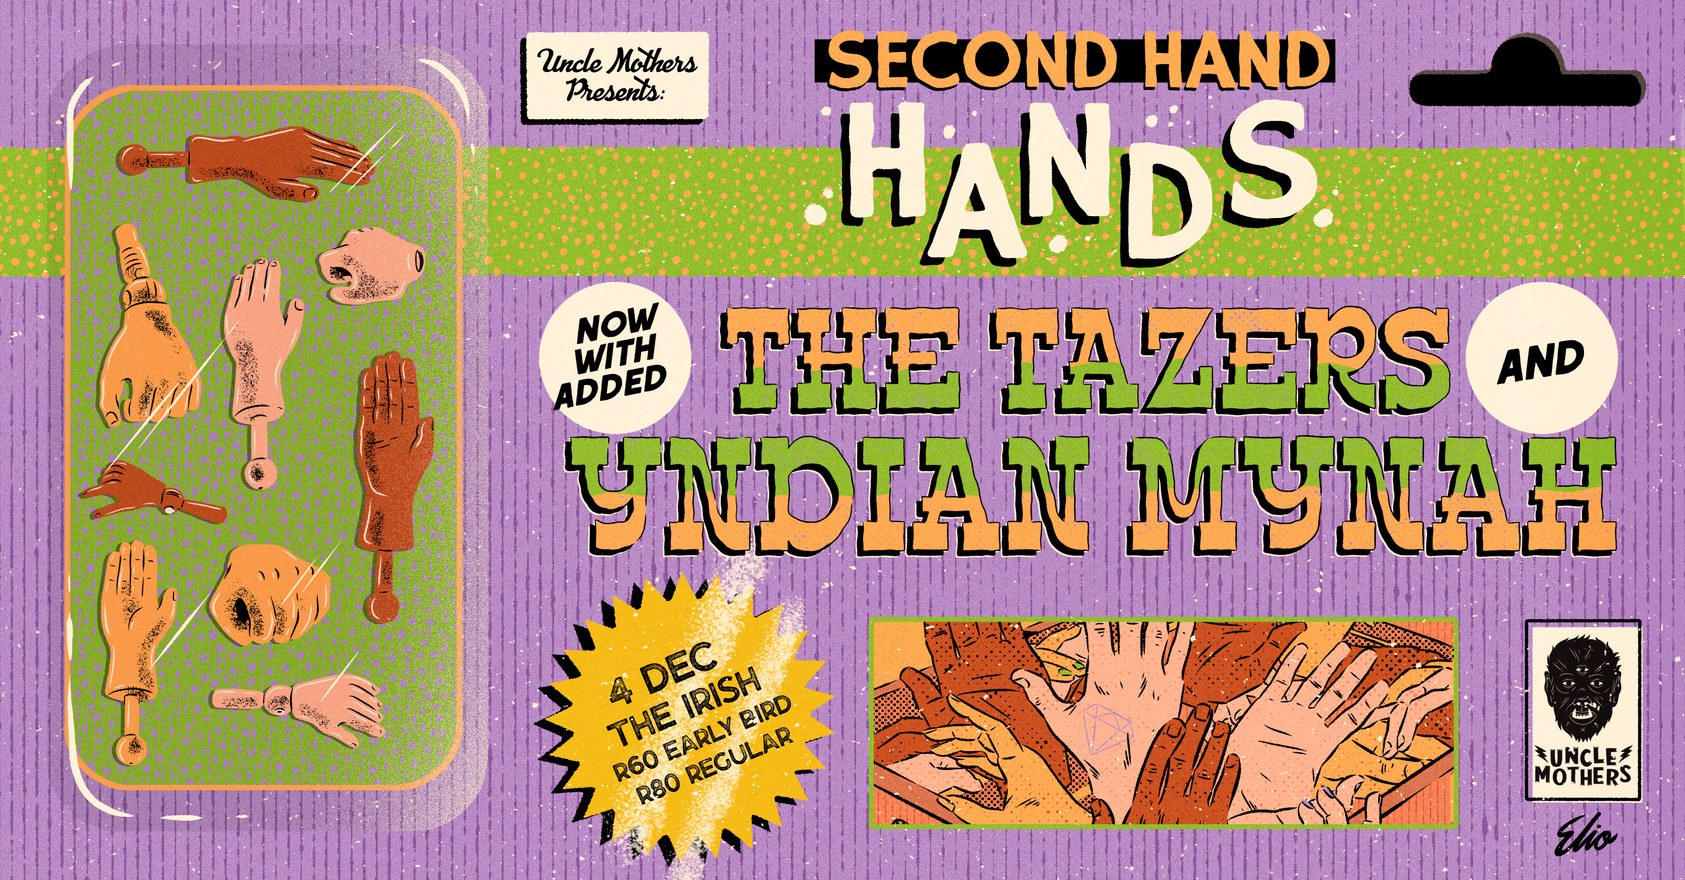 4 Dec Uncle Mothers - second hand hands